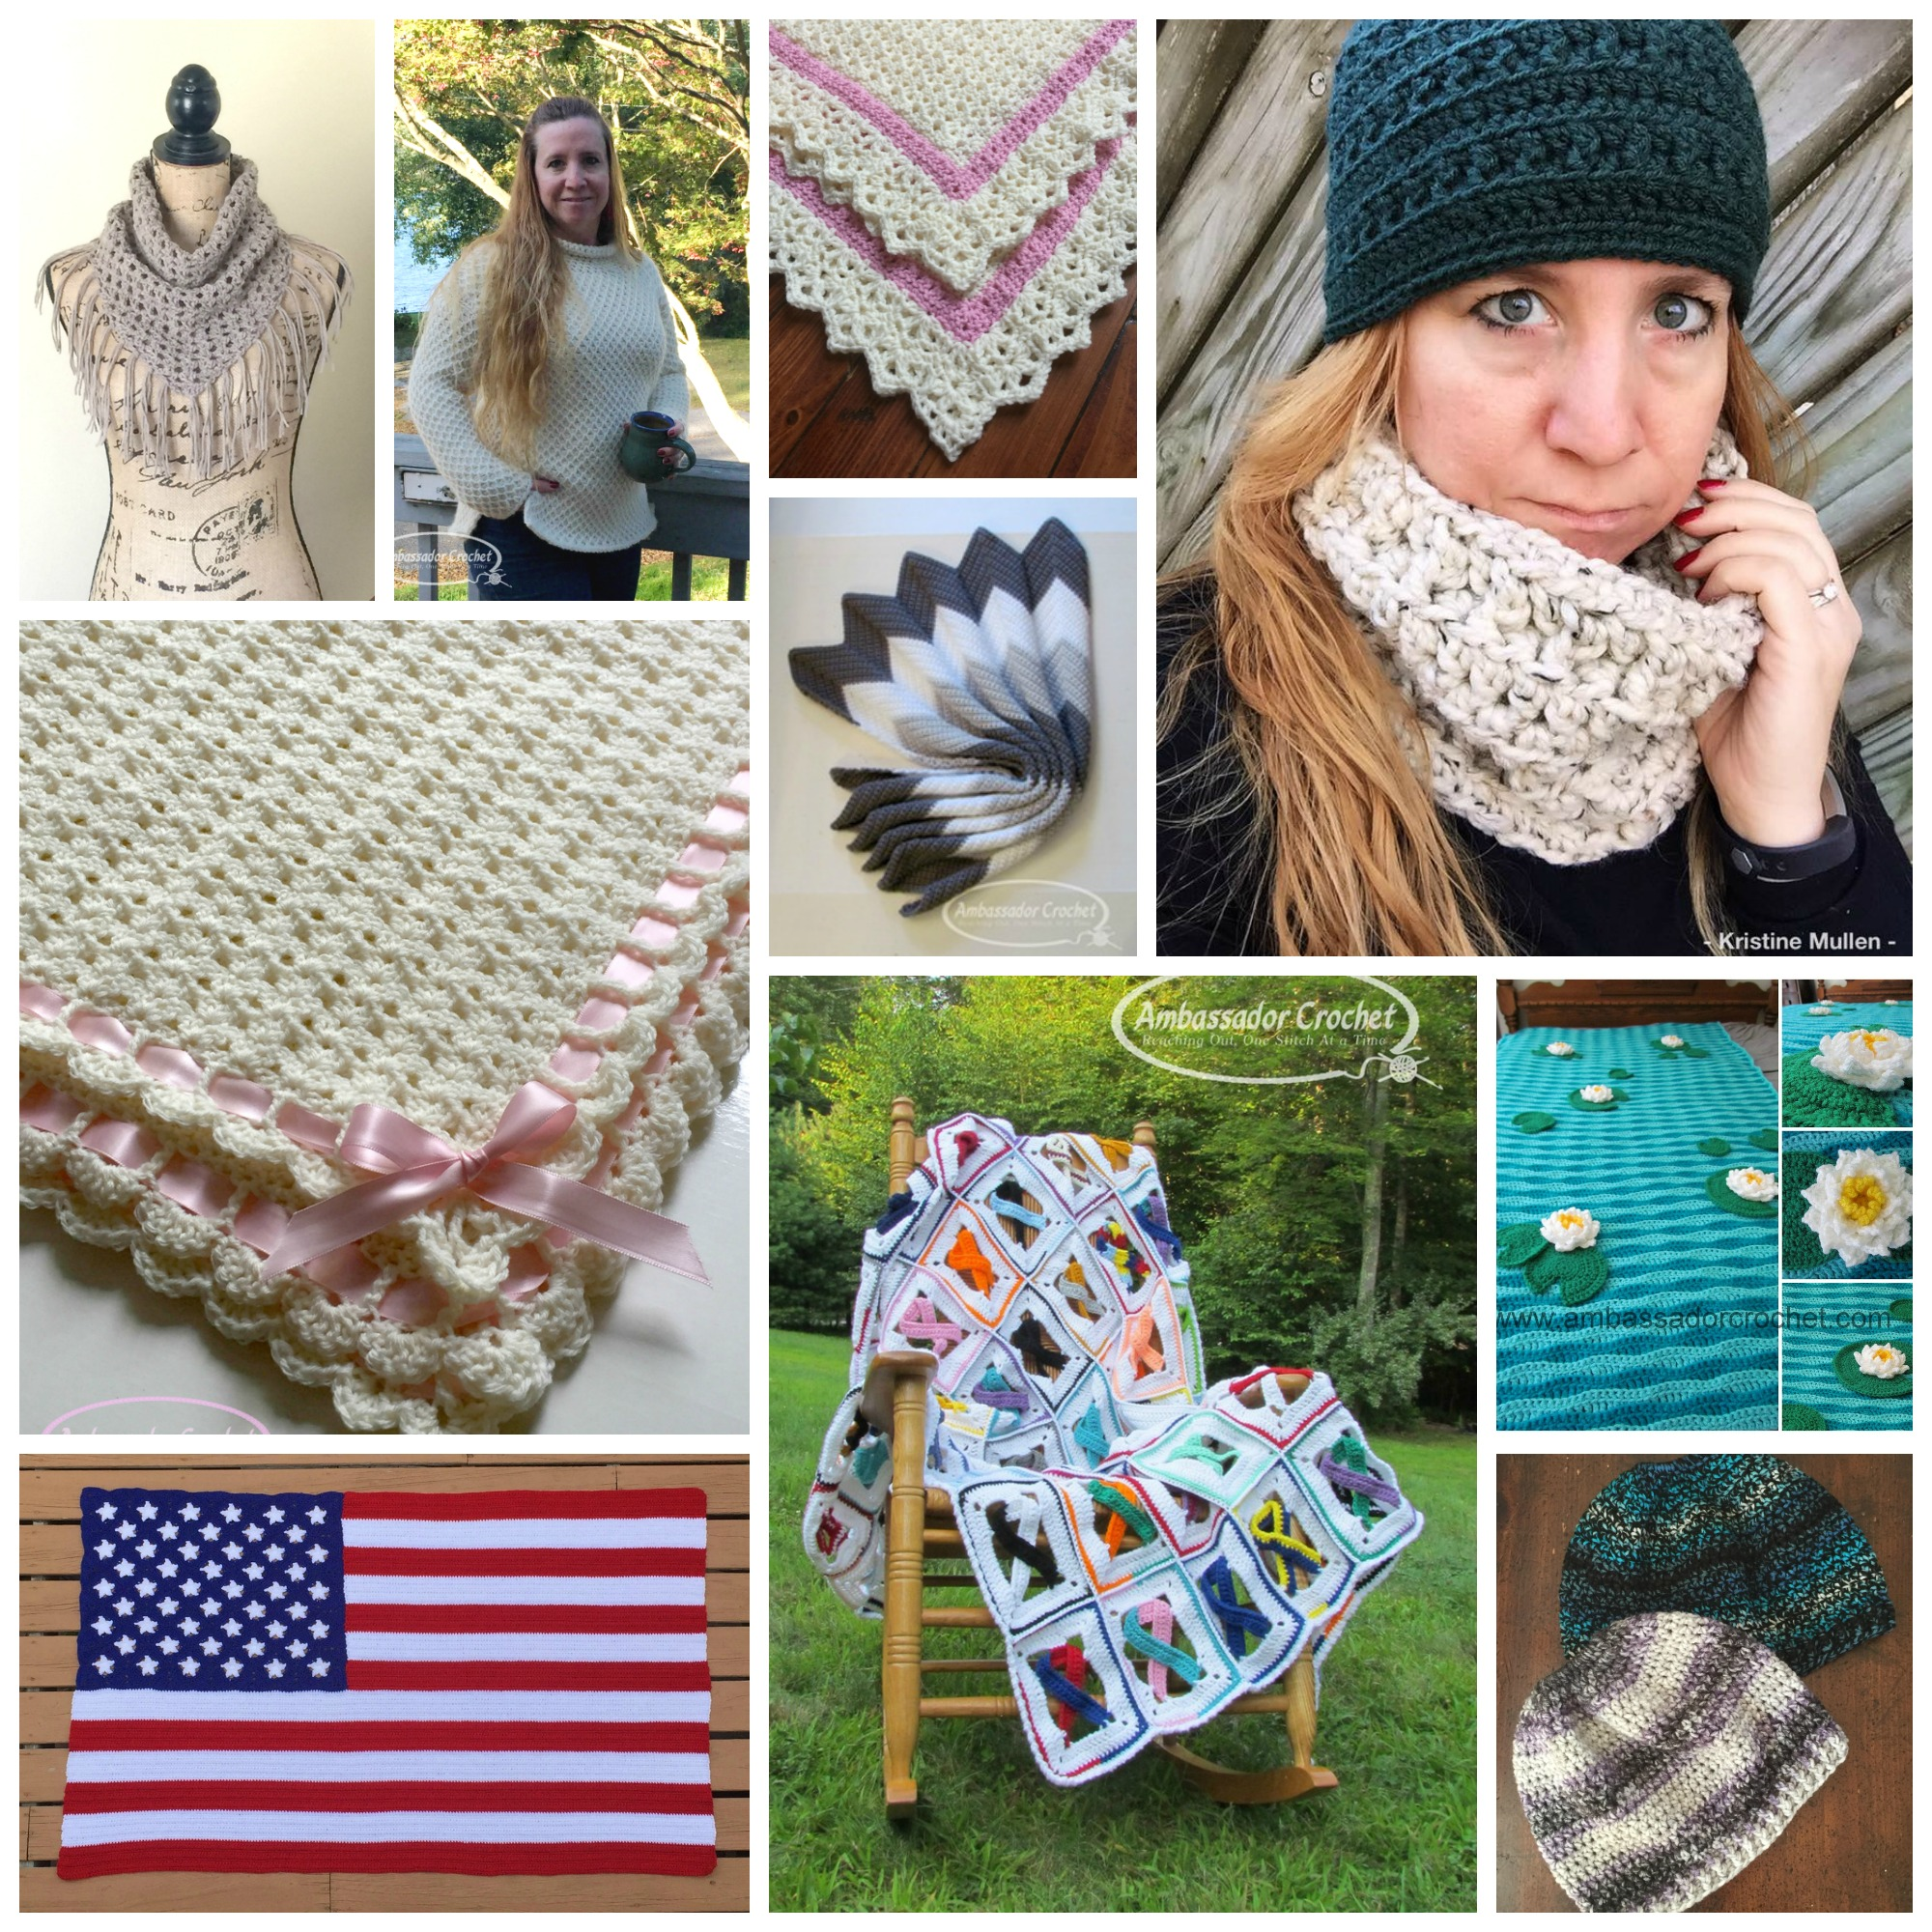 My customers have spoken! Here are my top 10 crochet patterns of 2017 based on your favorites!